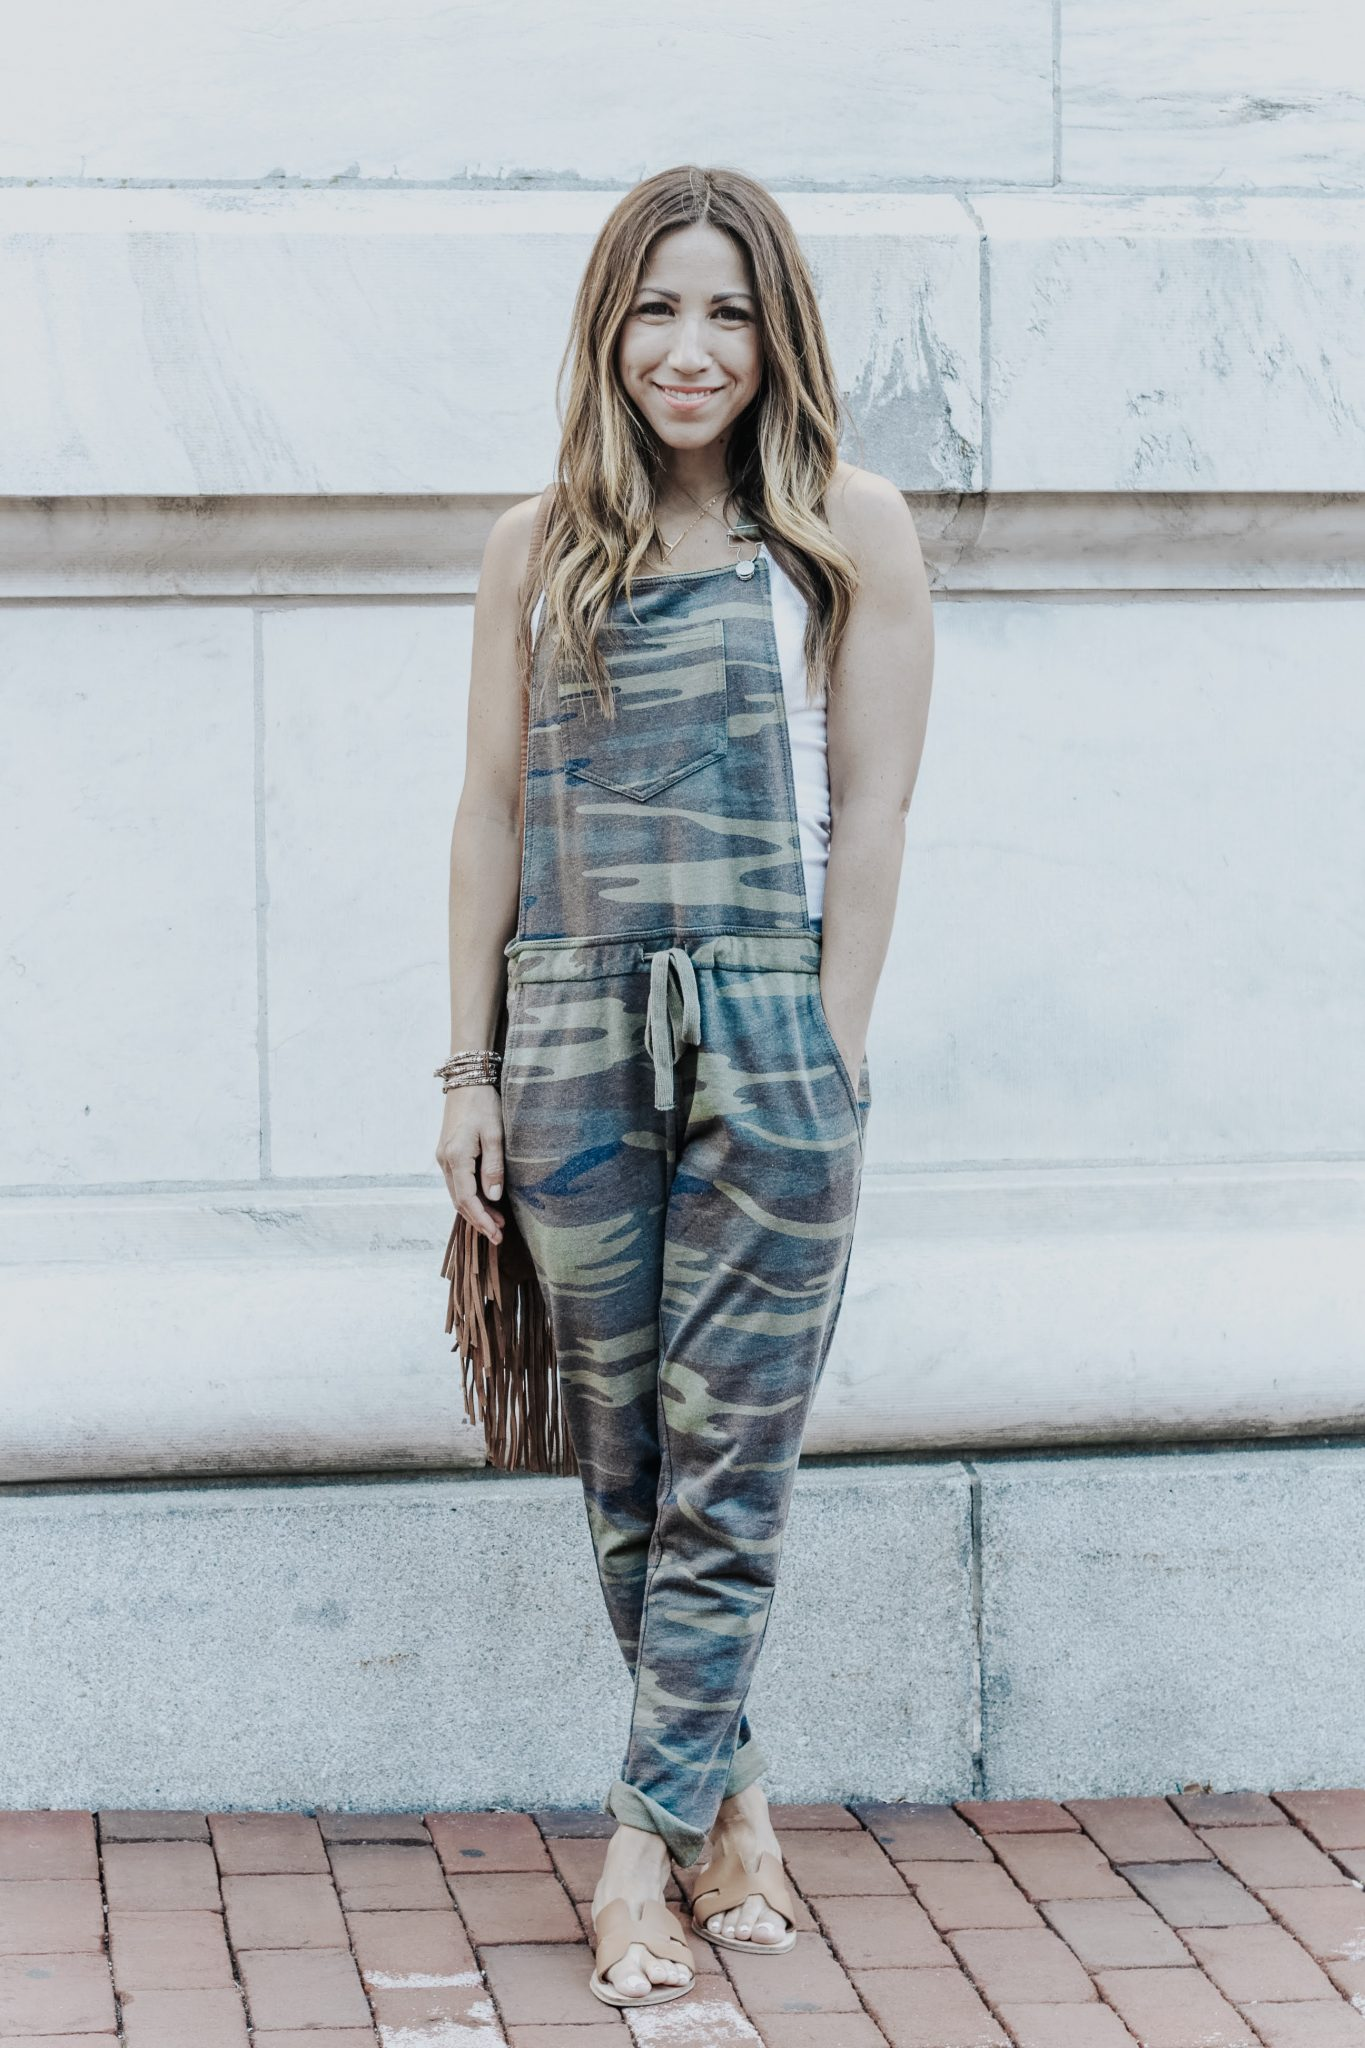 Lucki Clover boutique, red bank, nj featured by top US fashion blog, House of Leo